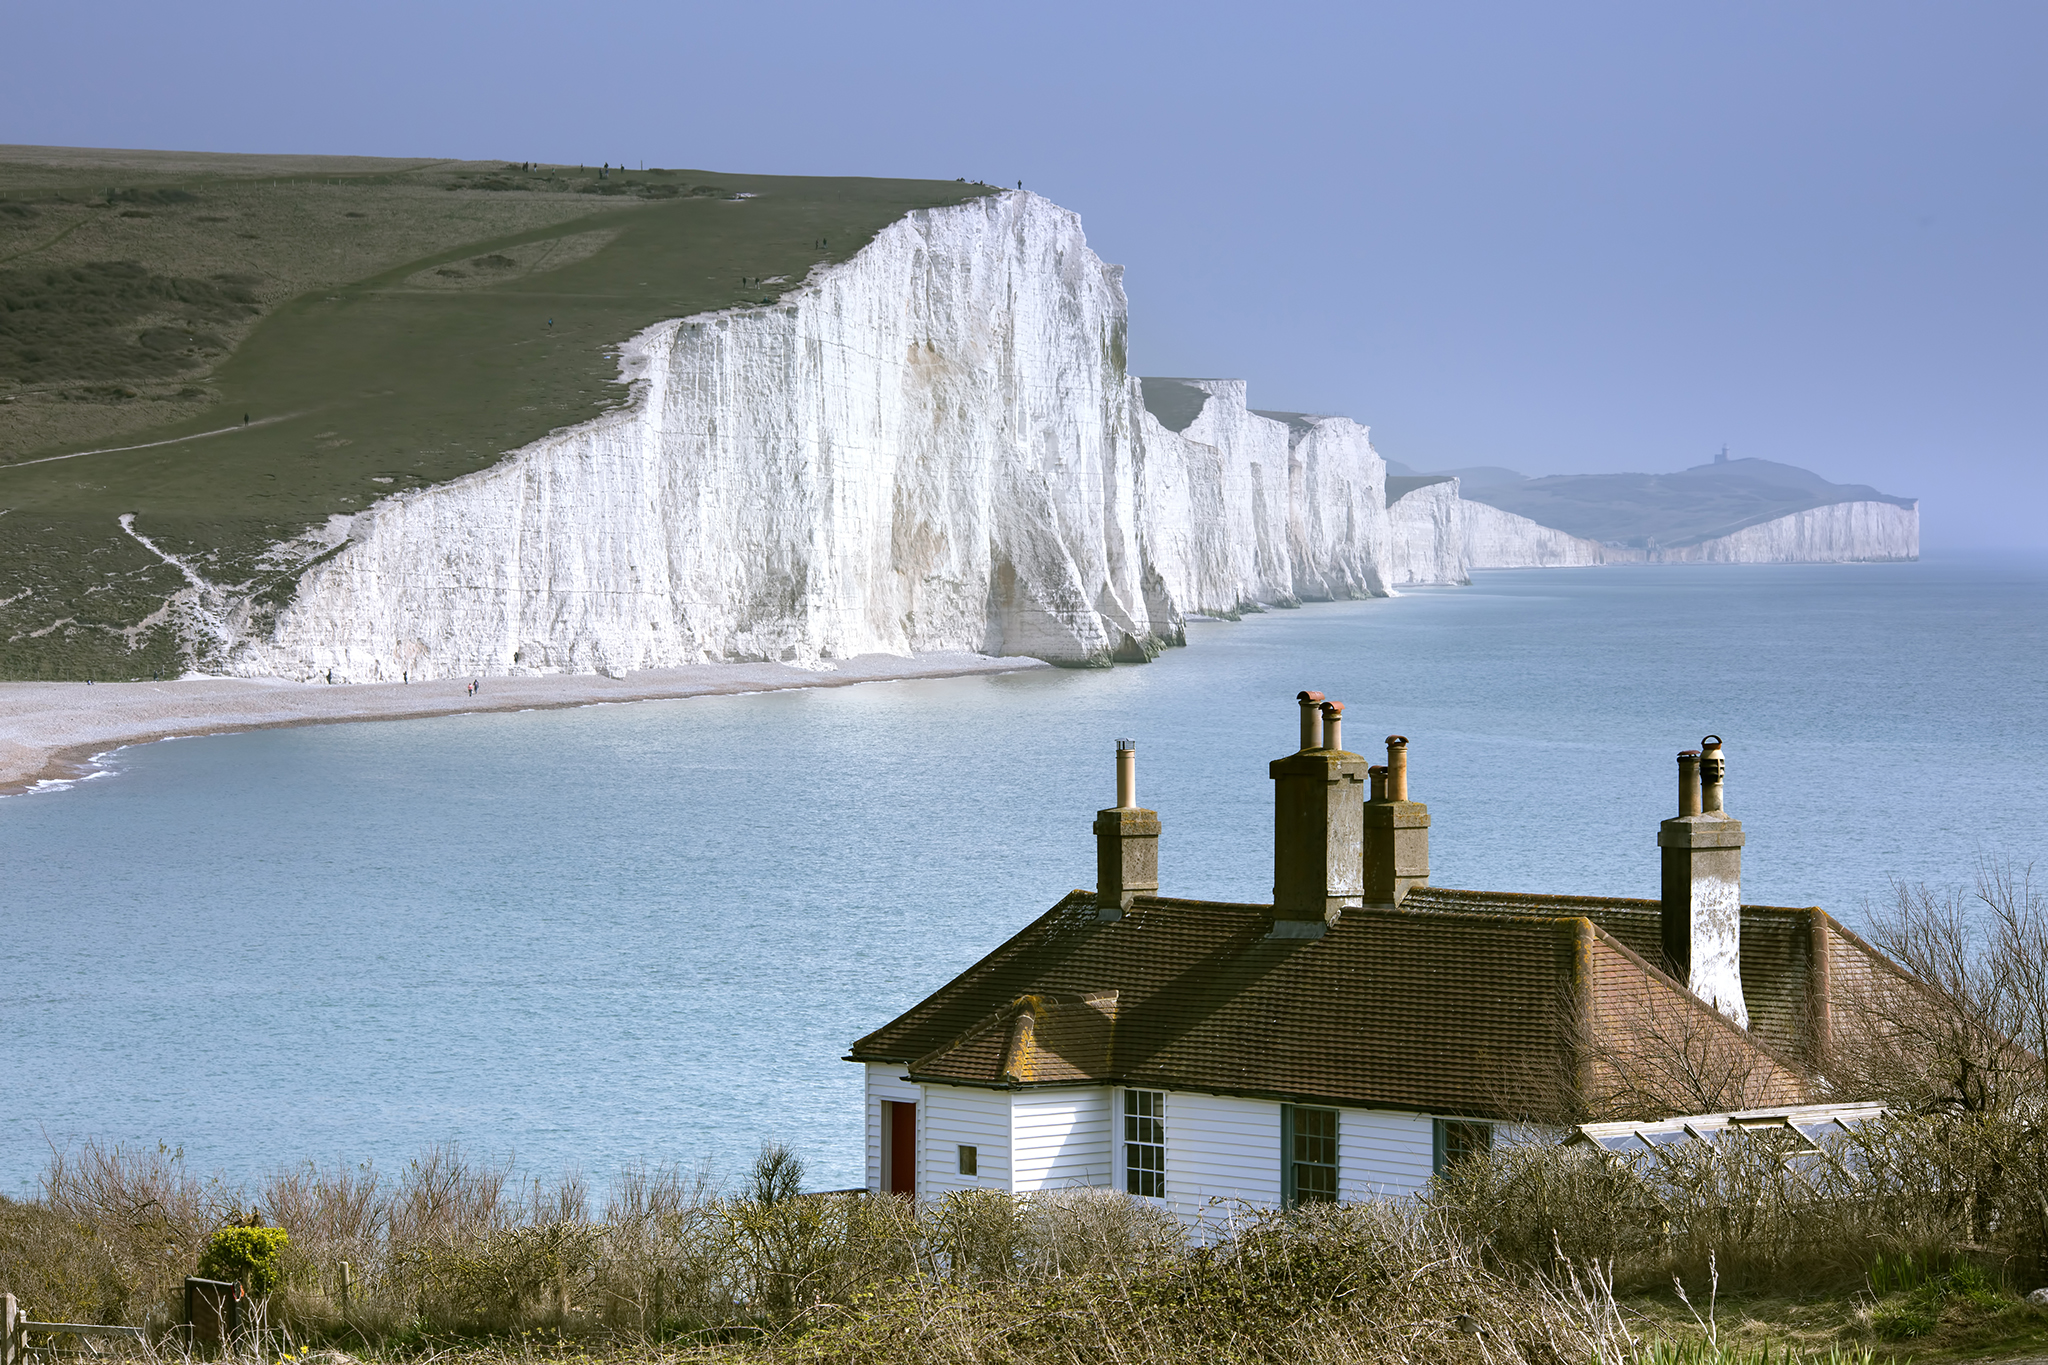 Coastguard Cottages and The Seven Sisters, United Kingdom